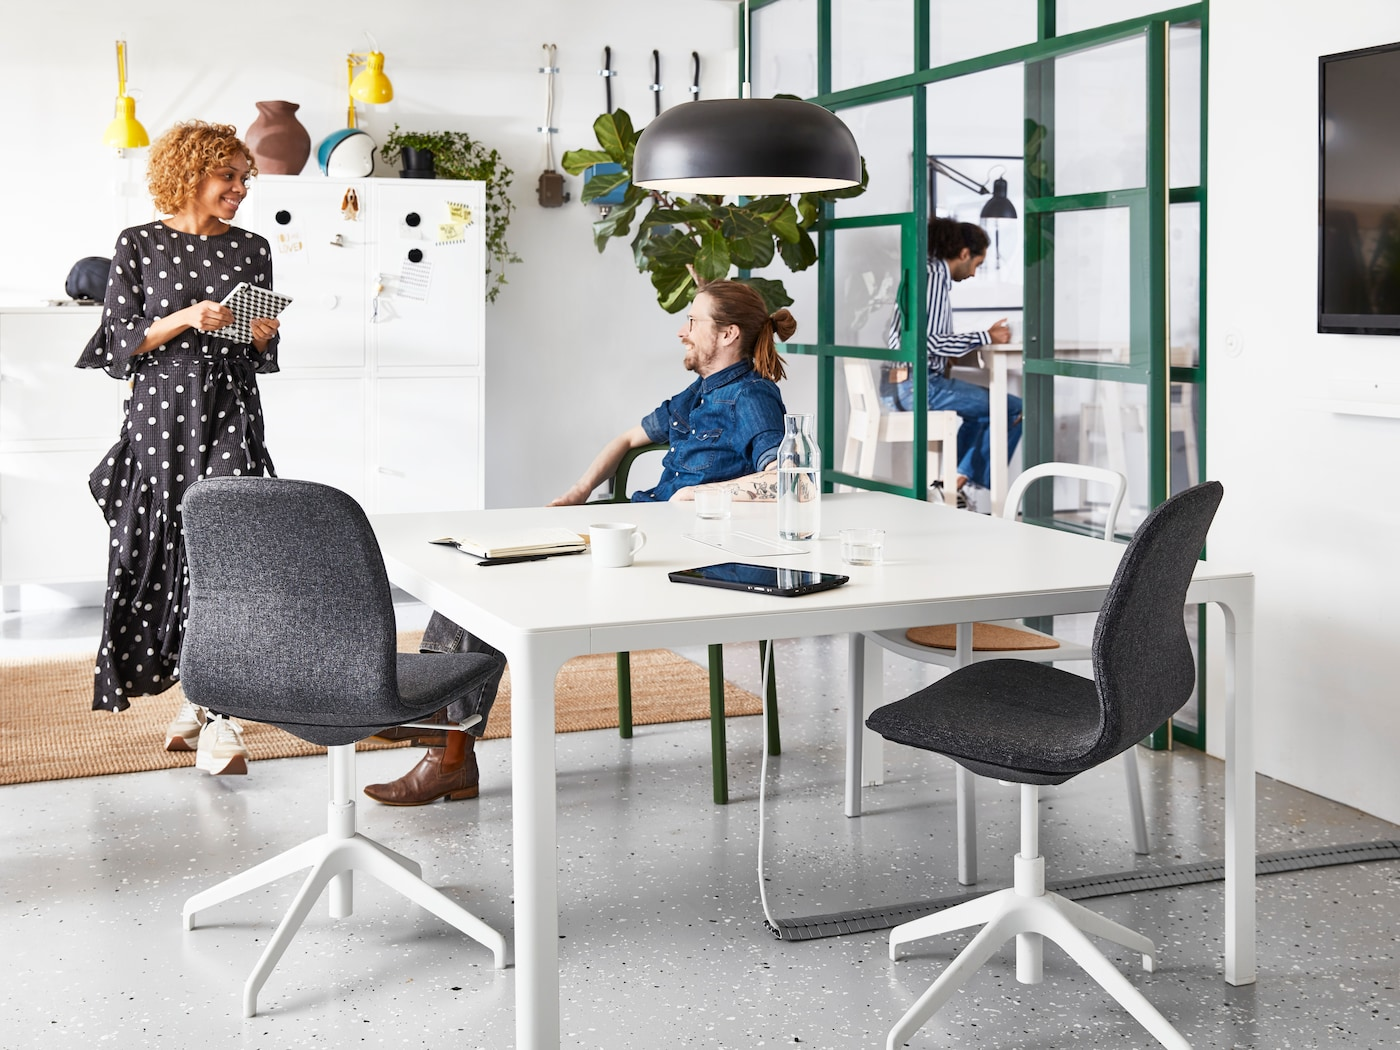 The man sitting on YPPERLIG chair with armrest is talking with a woman holding a notebook in the office where has BAKANT table and LÅNGFJÄLL office swivel chair.